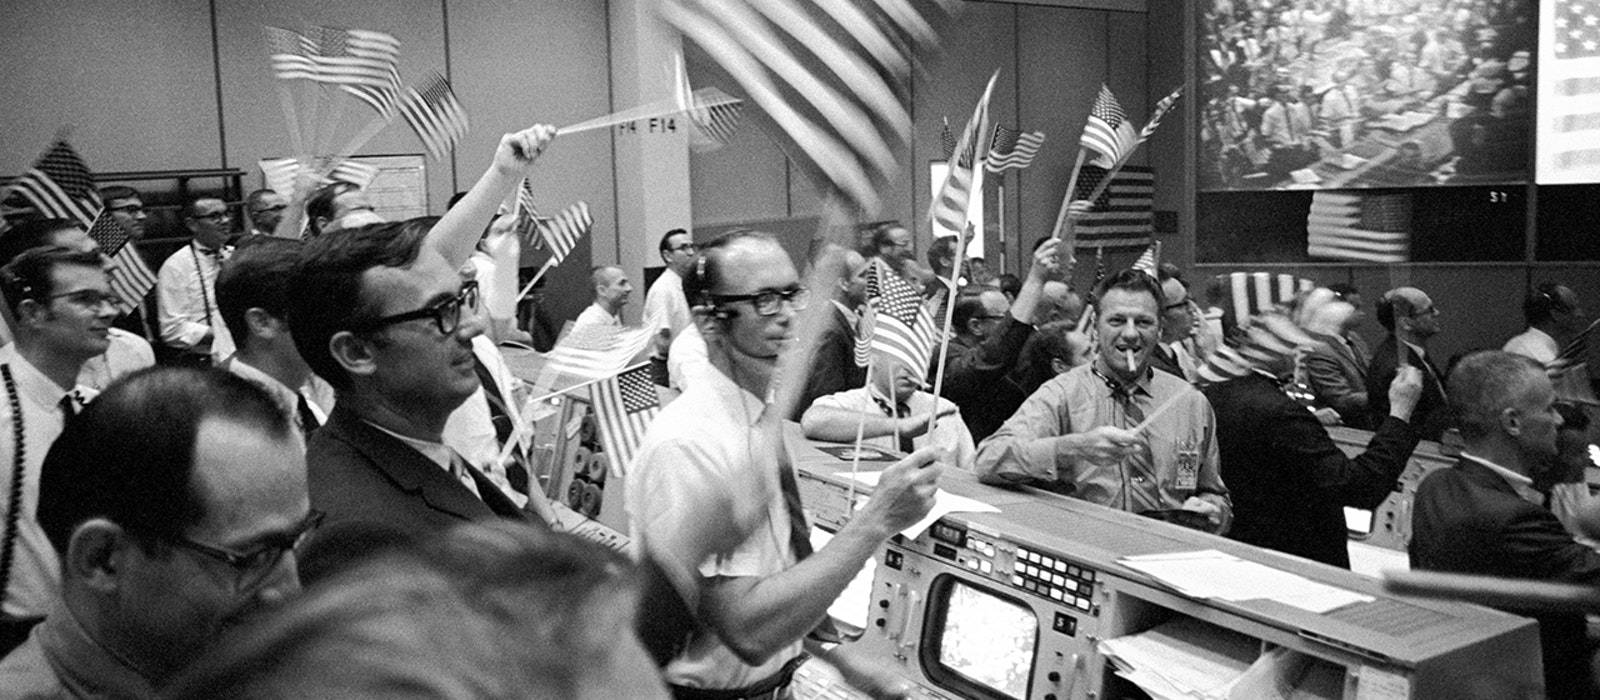 The Mission Operations Control Room, as it looked on July 24, 1969, as the flight controllers celebrated the return of the first lunar-landing mission.